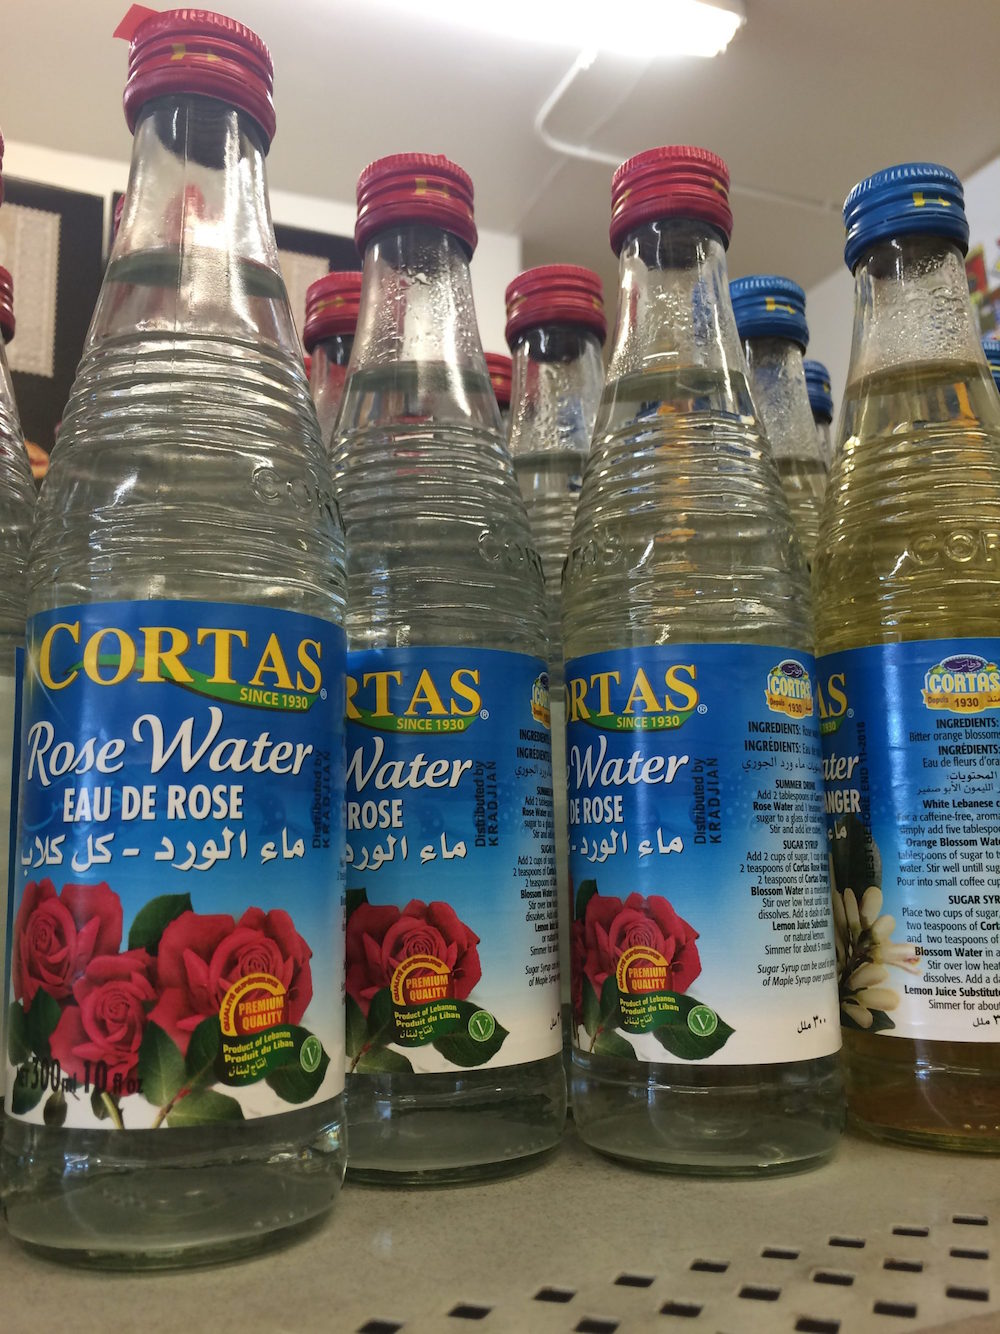 Cortas Rose Water. This is used in many Arabic desserts, often in conjunction with honey, as it intensifies the honey flavor.